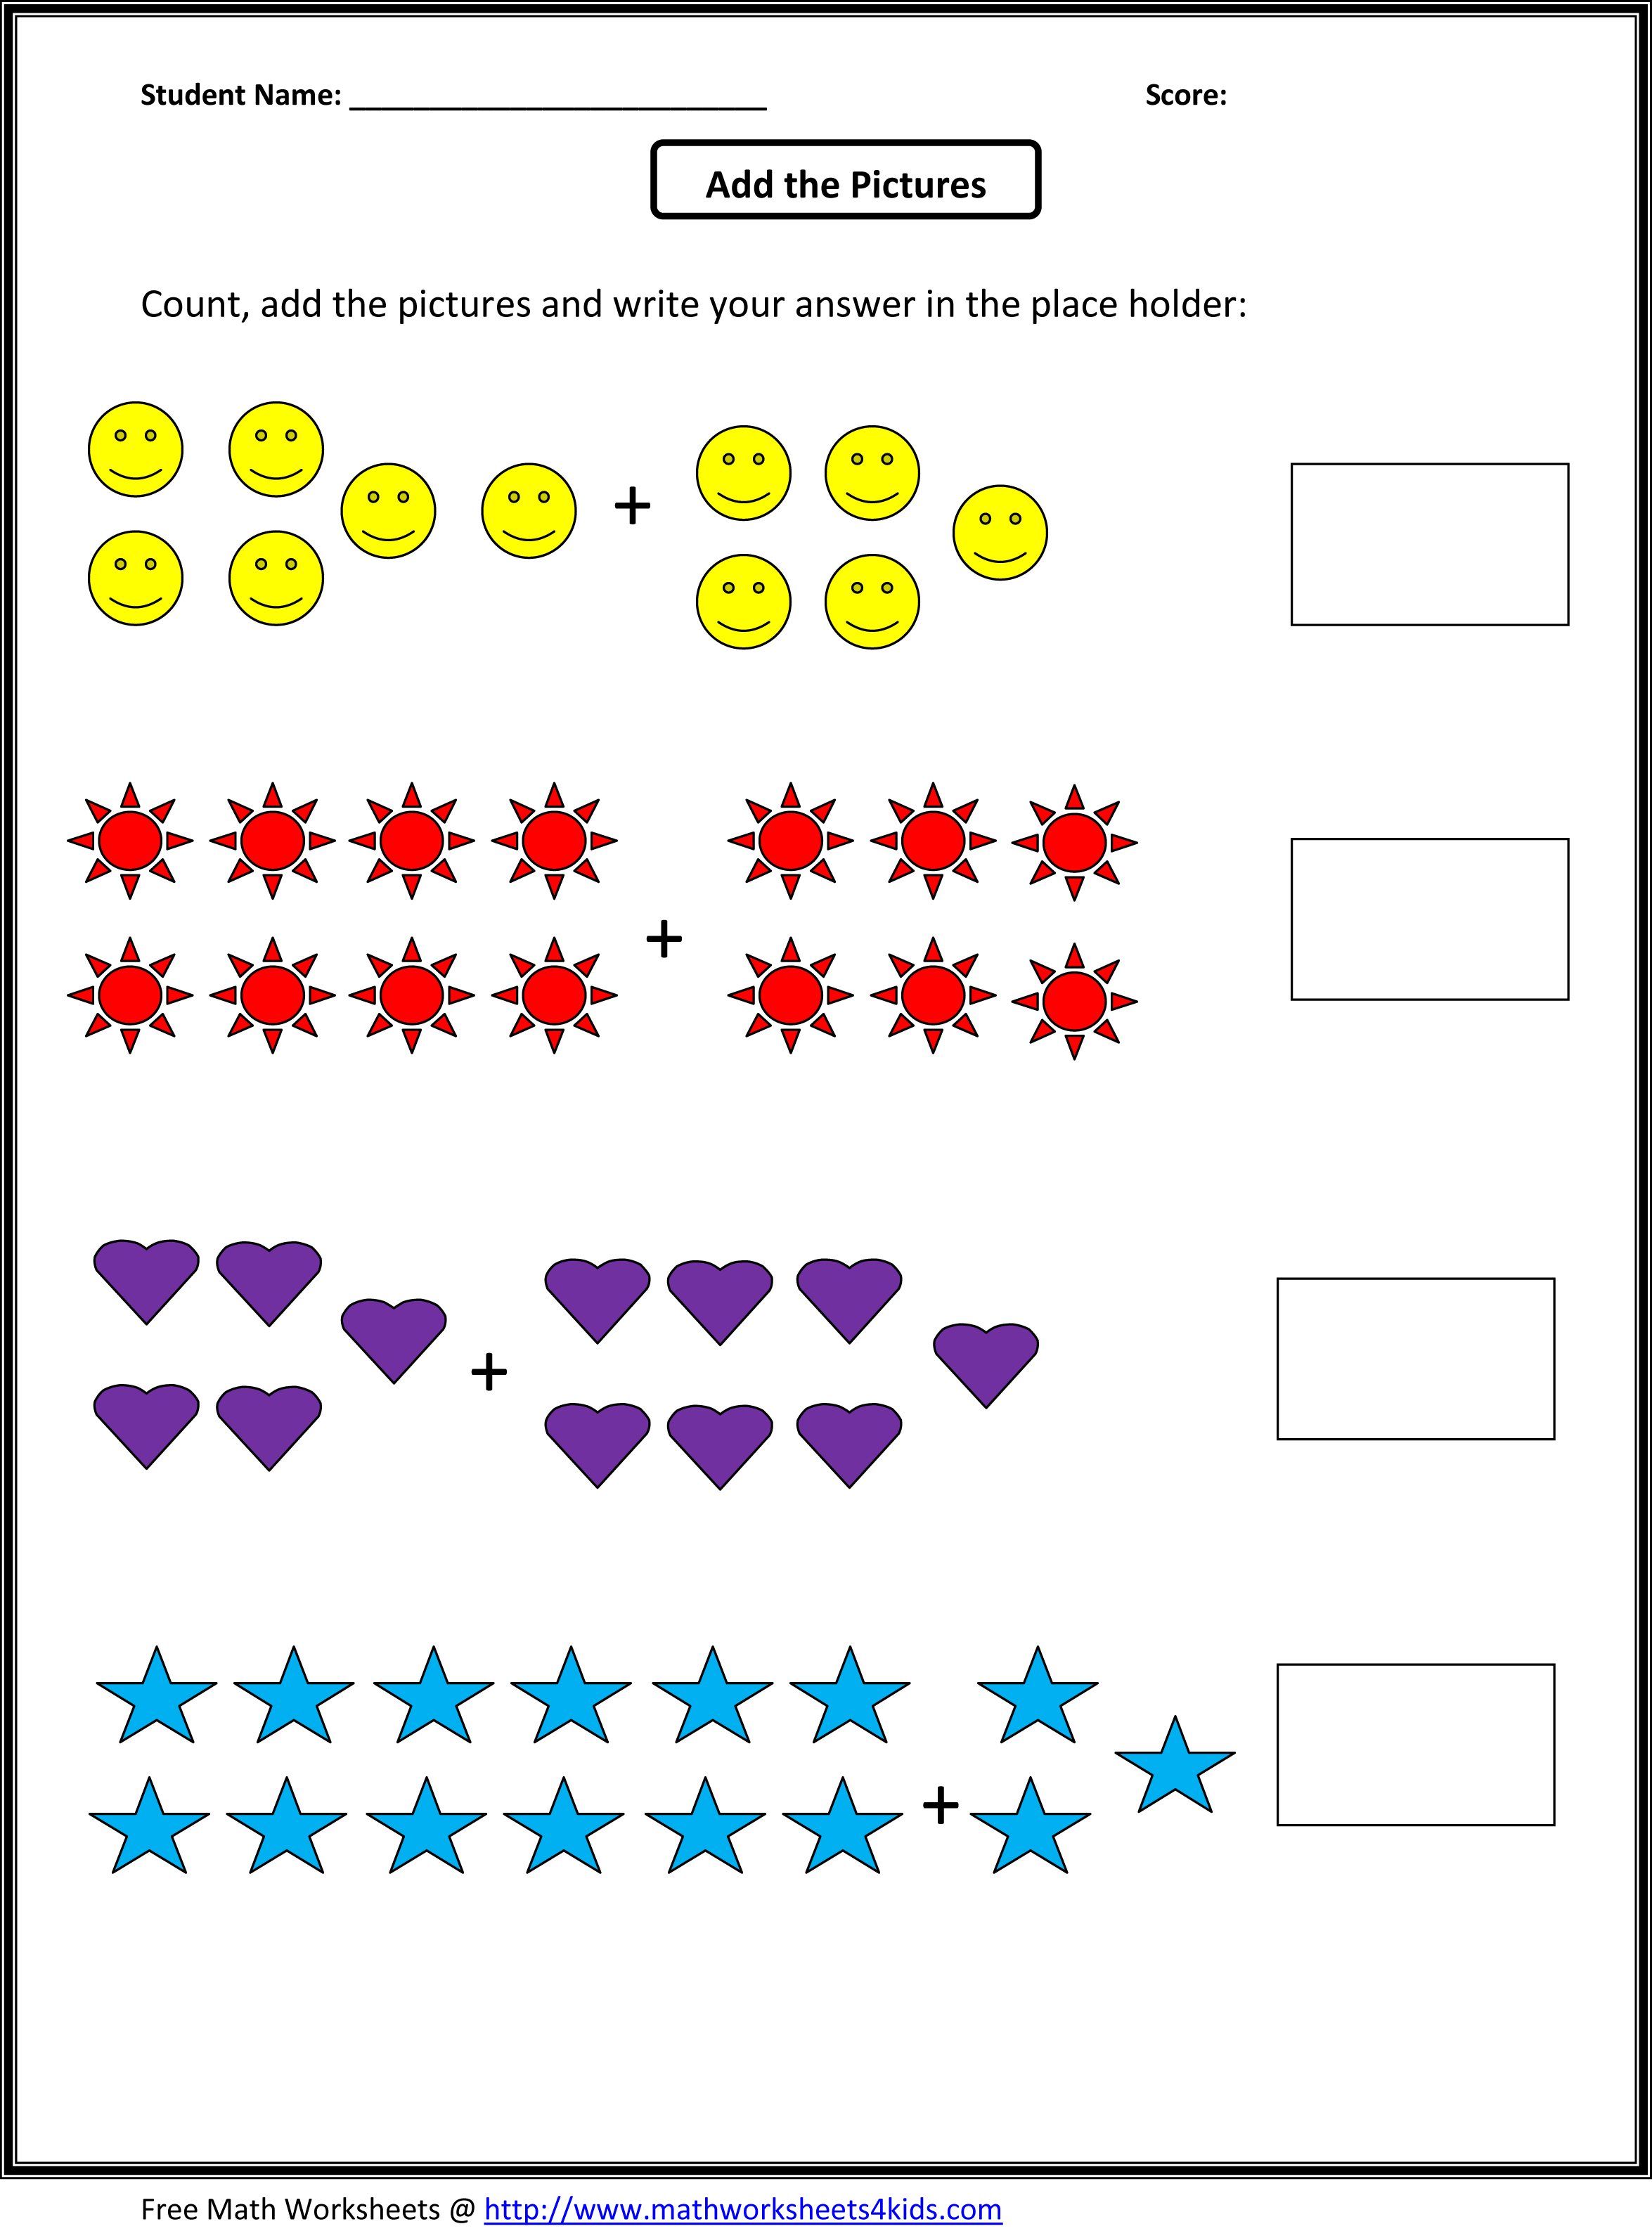 Weirdmailus  Marvelous Grade  Maths Worksheet  Reocurent With Entrancing Math Worksheets For St Grade Free  Reocurent With Beautiful Molar Mass Conversion Worksheet Also Rounding To The Nearest Ten And Hundred Worksheet In Addition Collecting Like Terms Worksheet And Multiplication Coloring Worksheet As Well As Equivalent Fractions Th Grade Worksheets Additionally Frequency Distribution Worksheet From Reocurentcom With Weirdmailus  Entrancing Grade  Maths Worksheet  Reocurent With Beautiful Math Worksheets For St Grade Free  Reocurent And Marvelous Molar Mass Conversion Worksheet Also Rounding To The Nearest Ten And Hundred Worksheet In Addition Collecting Like Terms Worksheet From Reocurentcom